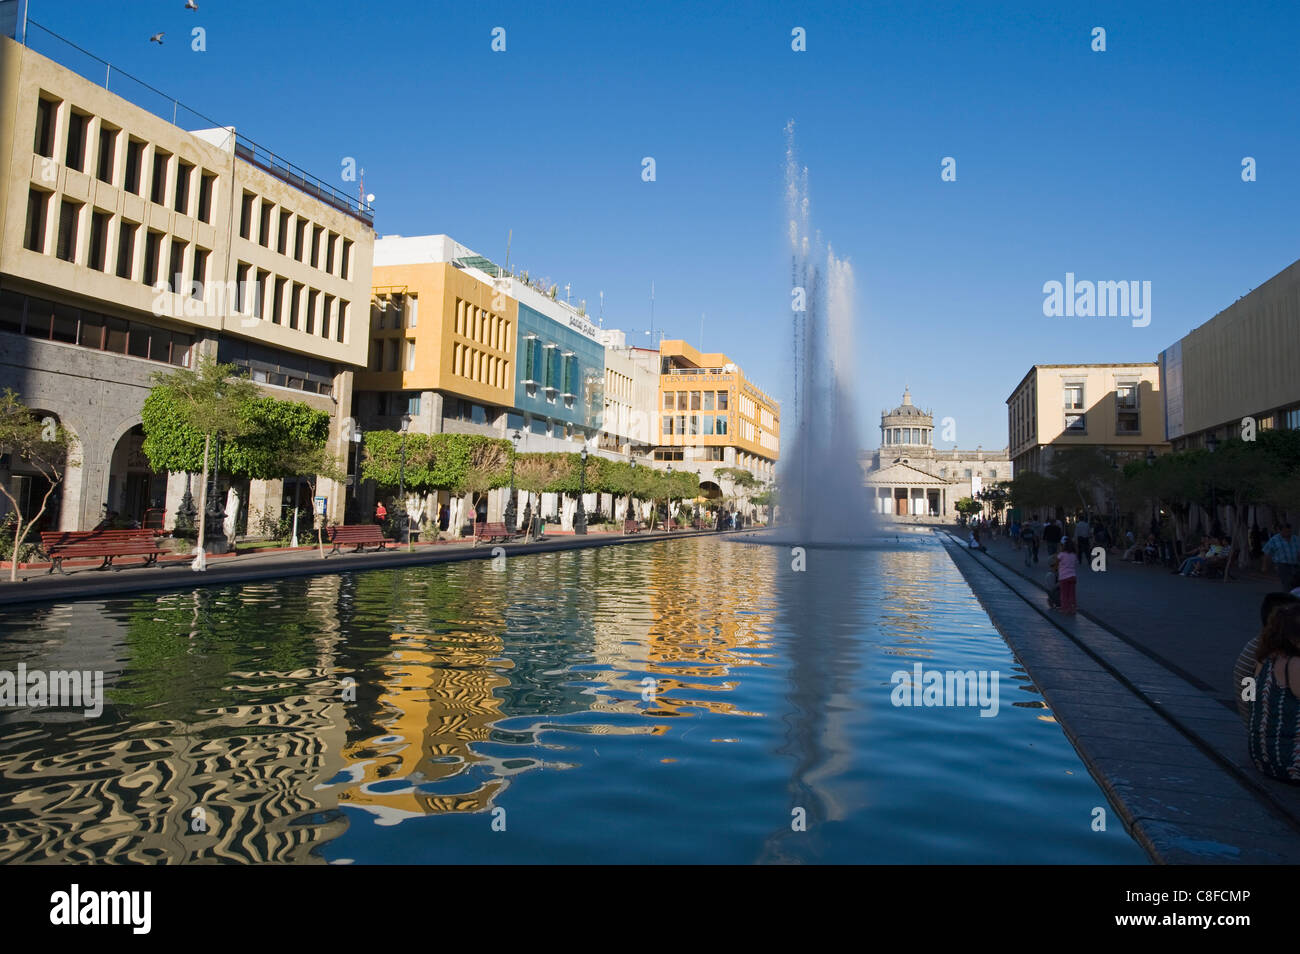 Water fountain at Instituto Cultural de Cabanas, UNESCO World Heritage Site, Guadalajara, Mexico - Stock Image